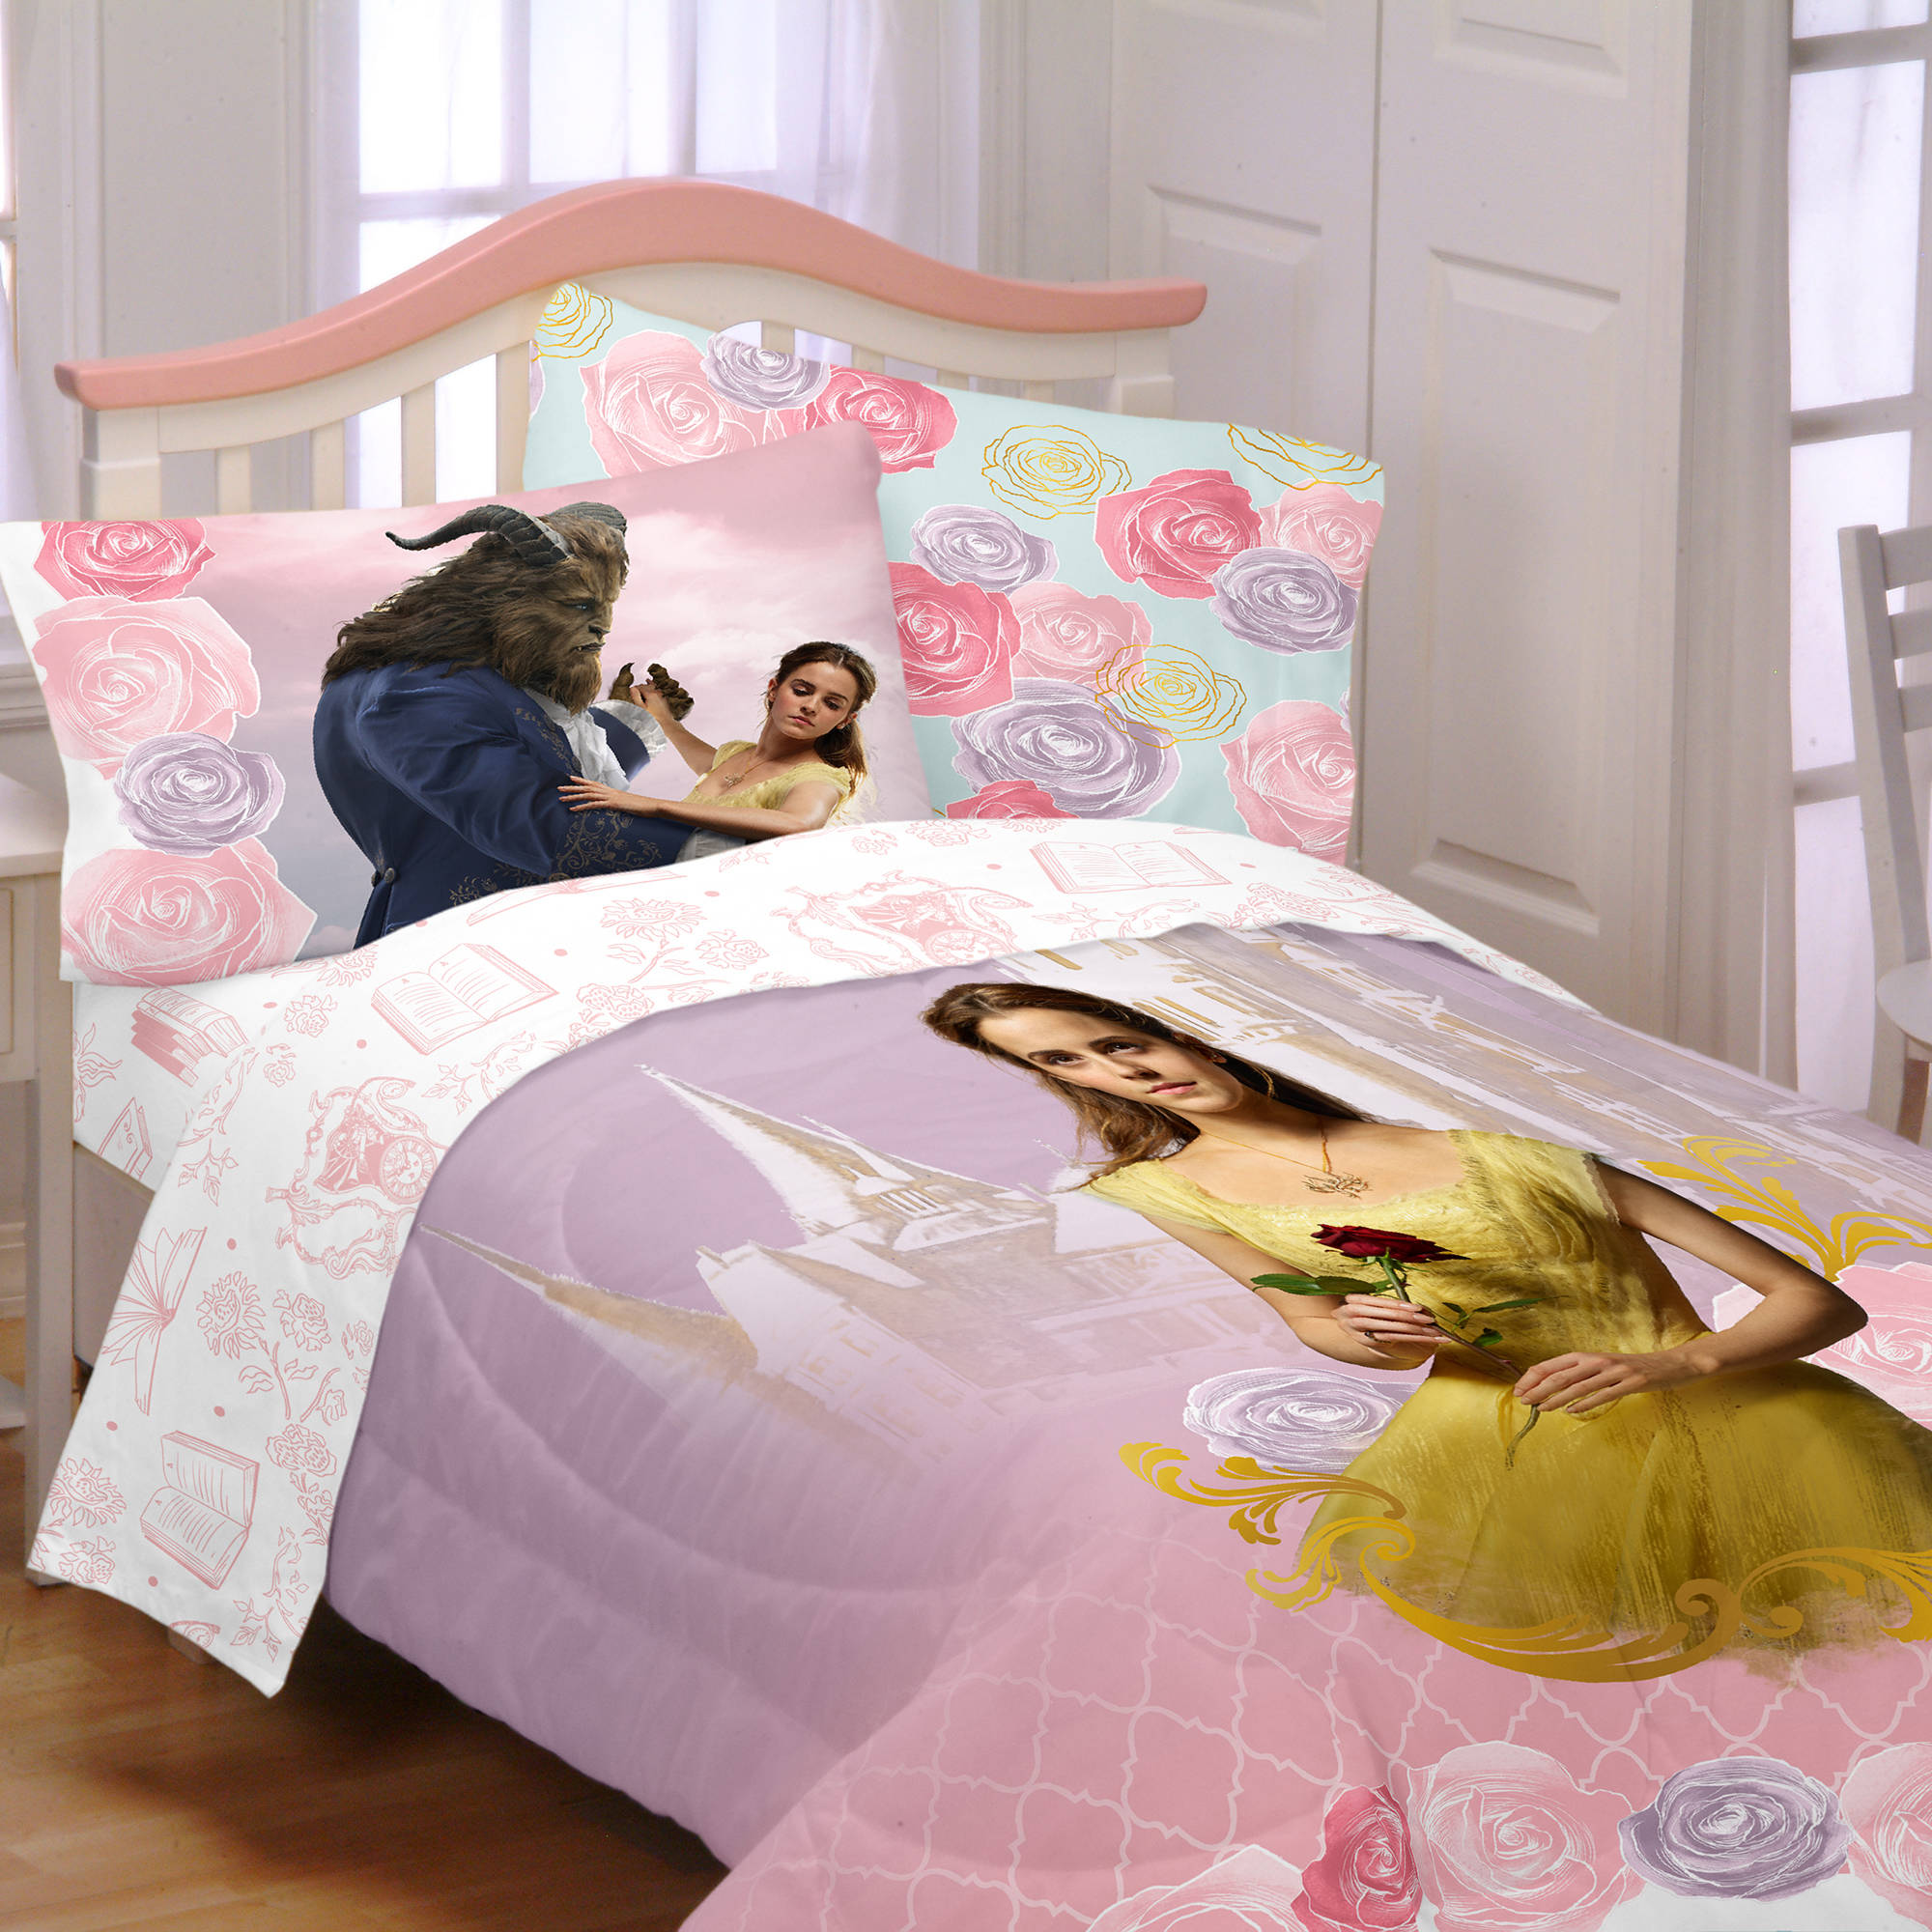 "Disney's Beauty and the Beast ""Enchanted Romance"" Kids' Bedding Comforter, Twin, Exclusive"